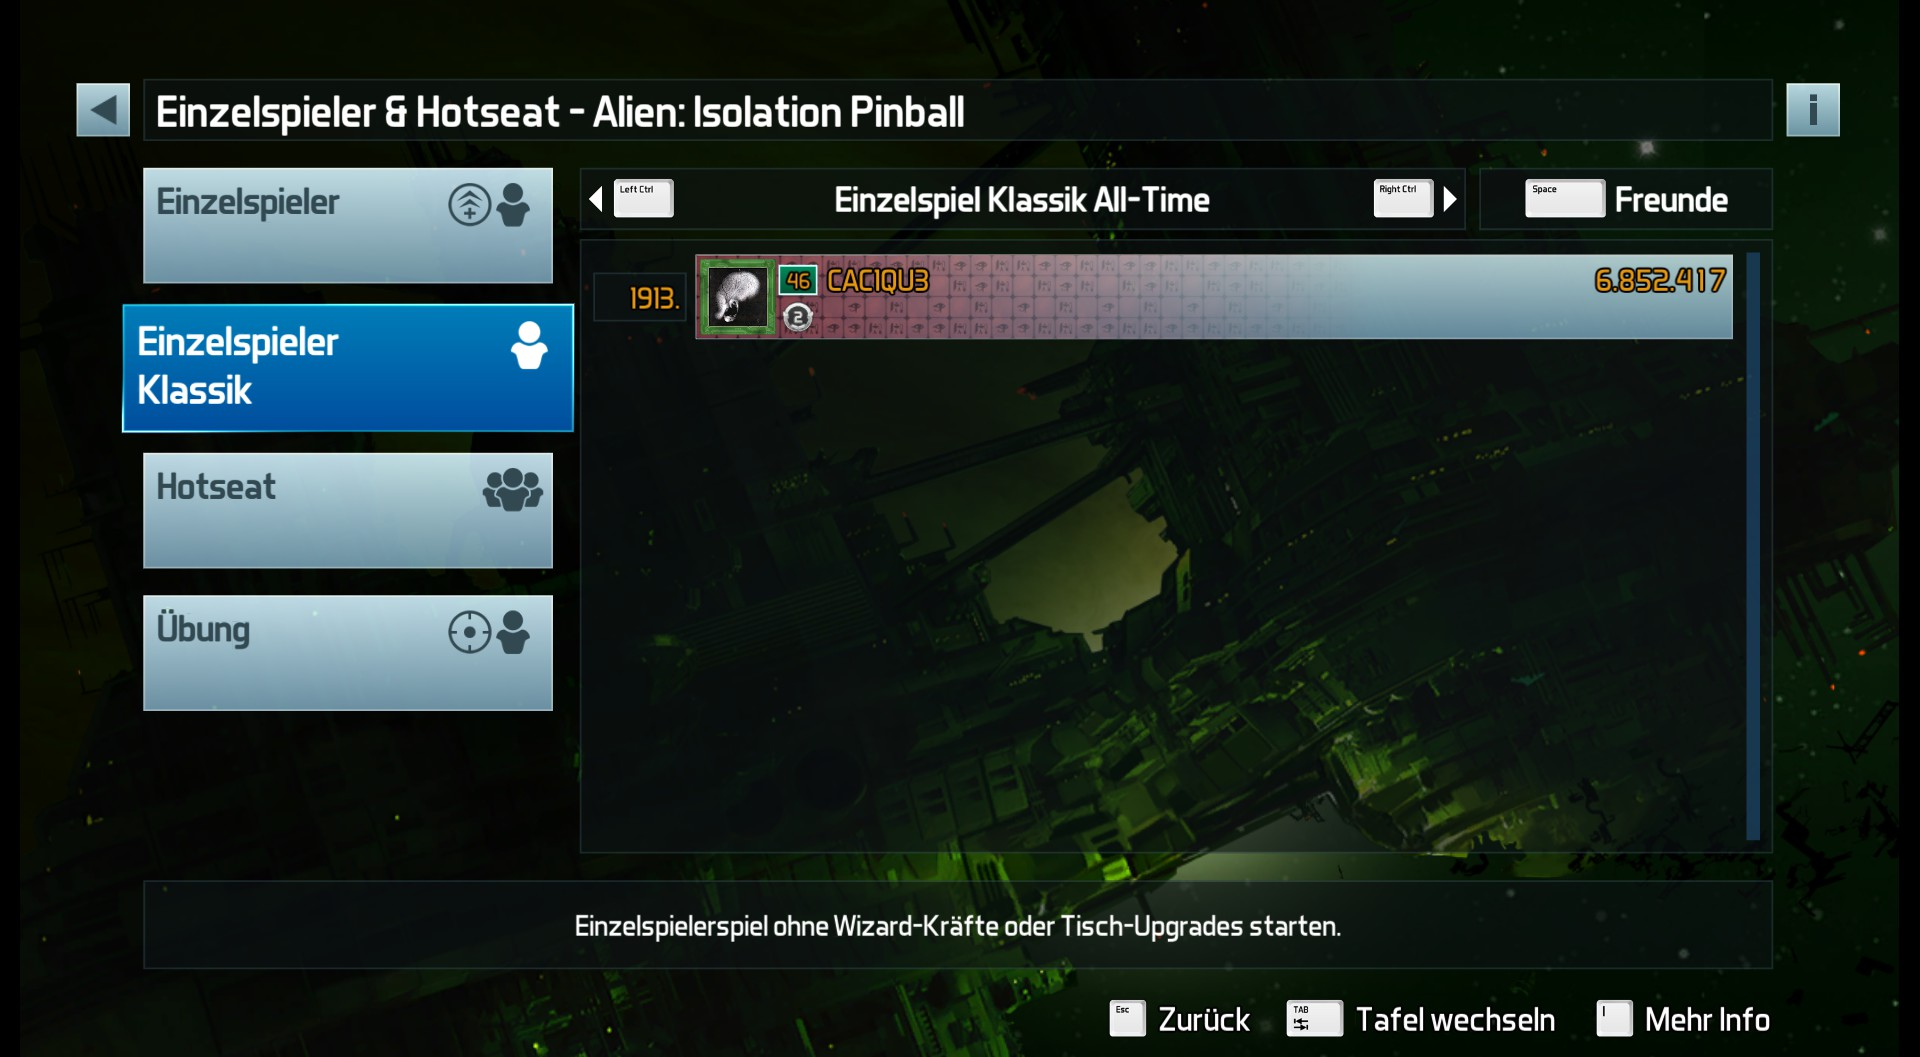 CAC1QU3: Pinball FX3: Alien: Isolation Pinball [Classic] (PC) 6,852,417 points on 2019-03-22 07:19:30